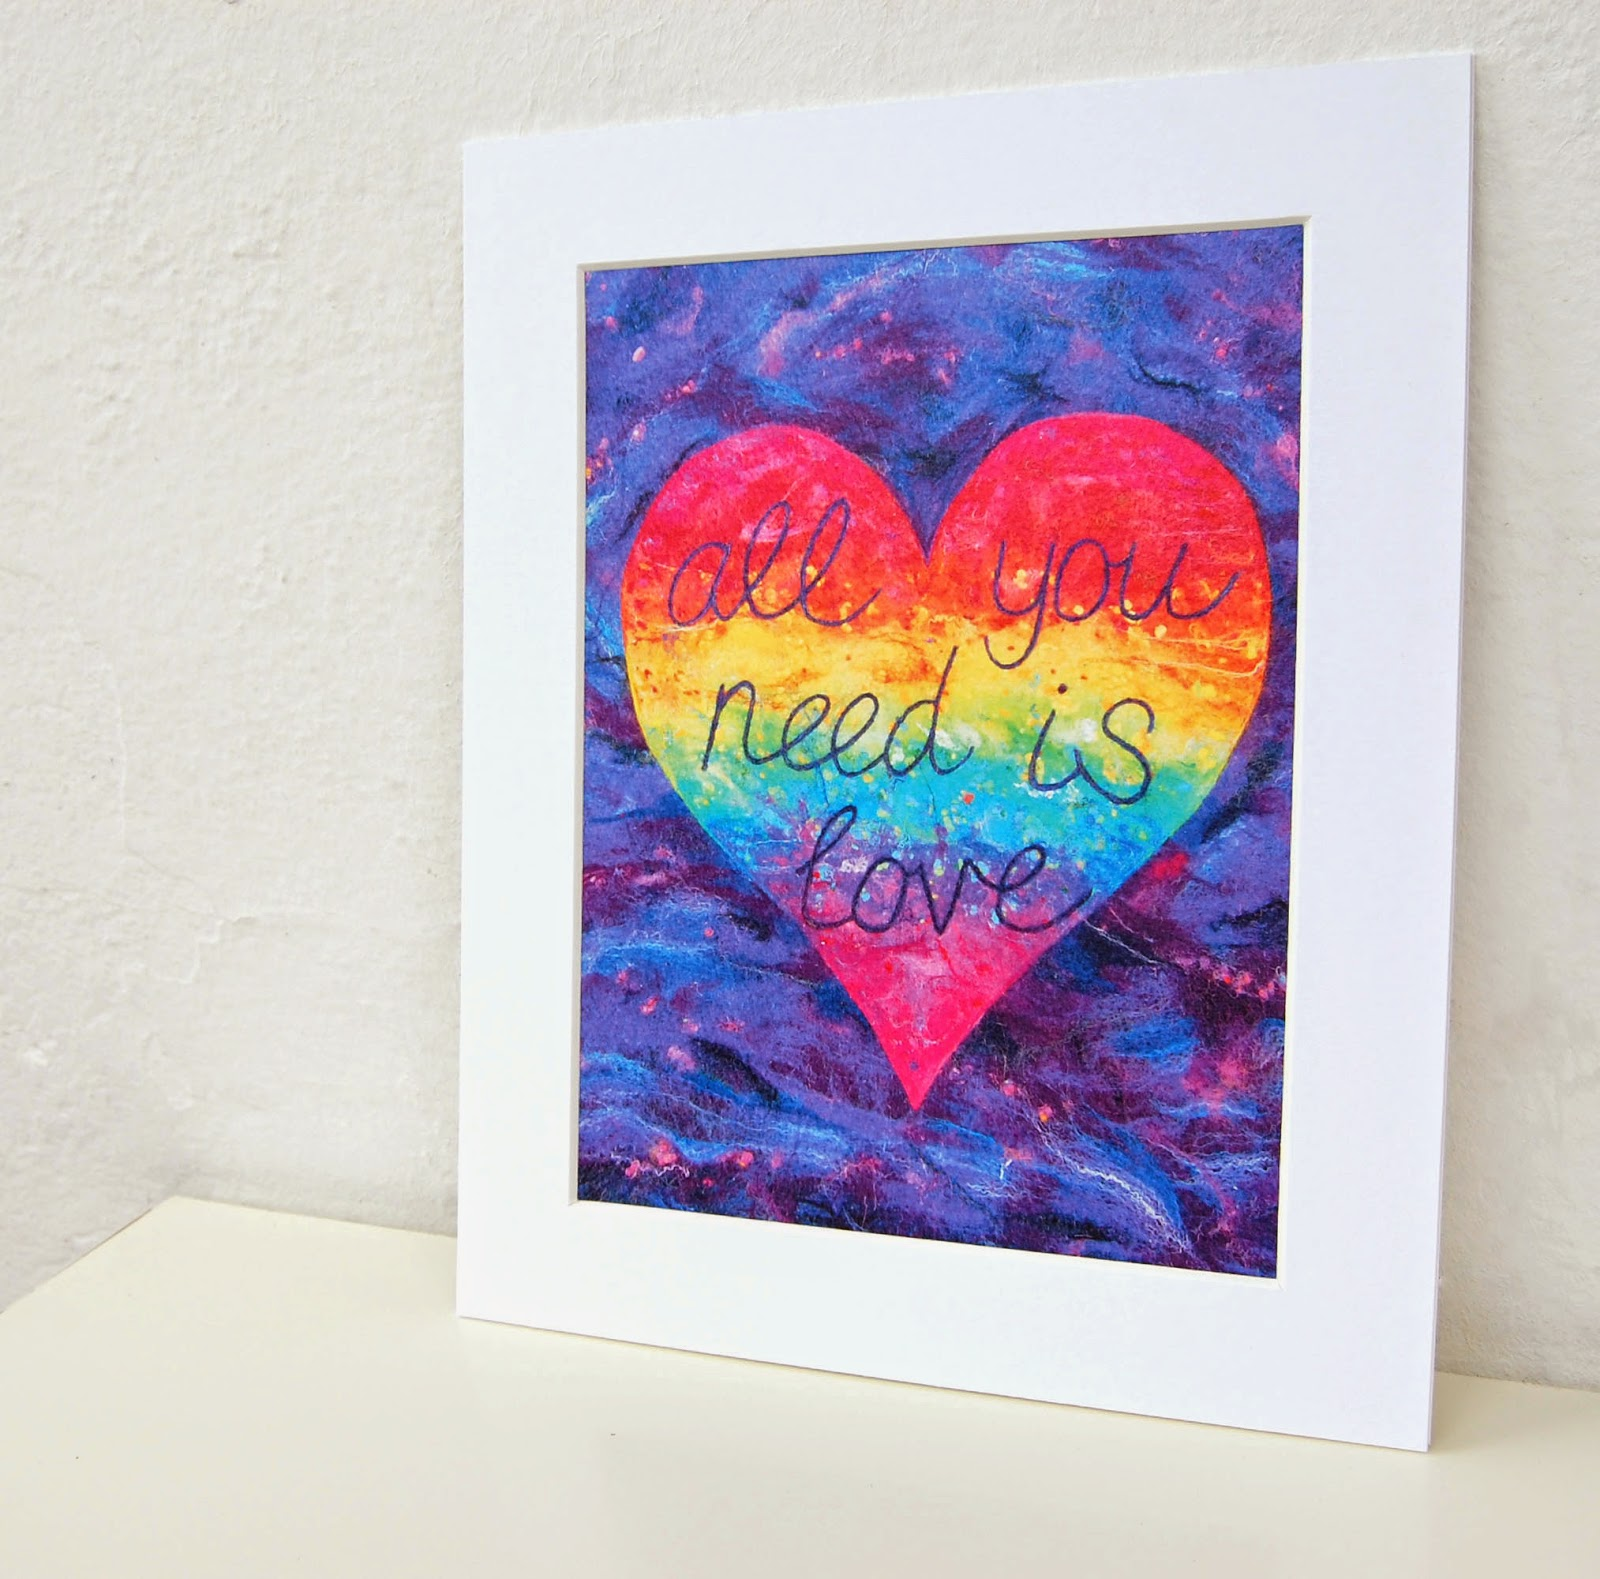 https://www.etsy.com/listing/189554329/all-you-need-is-love-a-colourful-semi?ref=shop_home_active_9